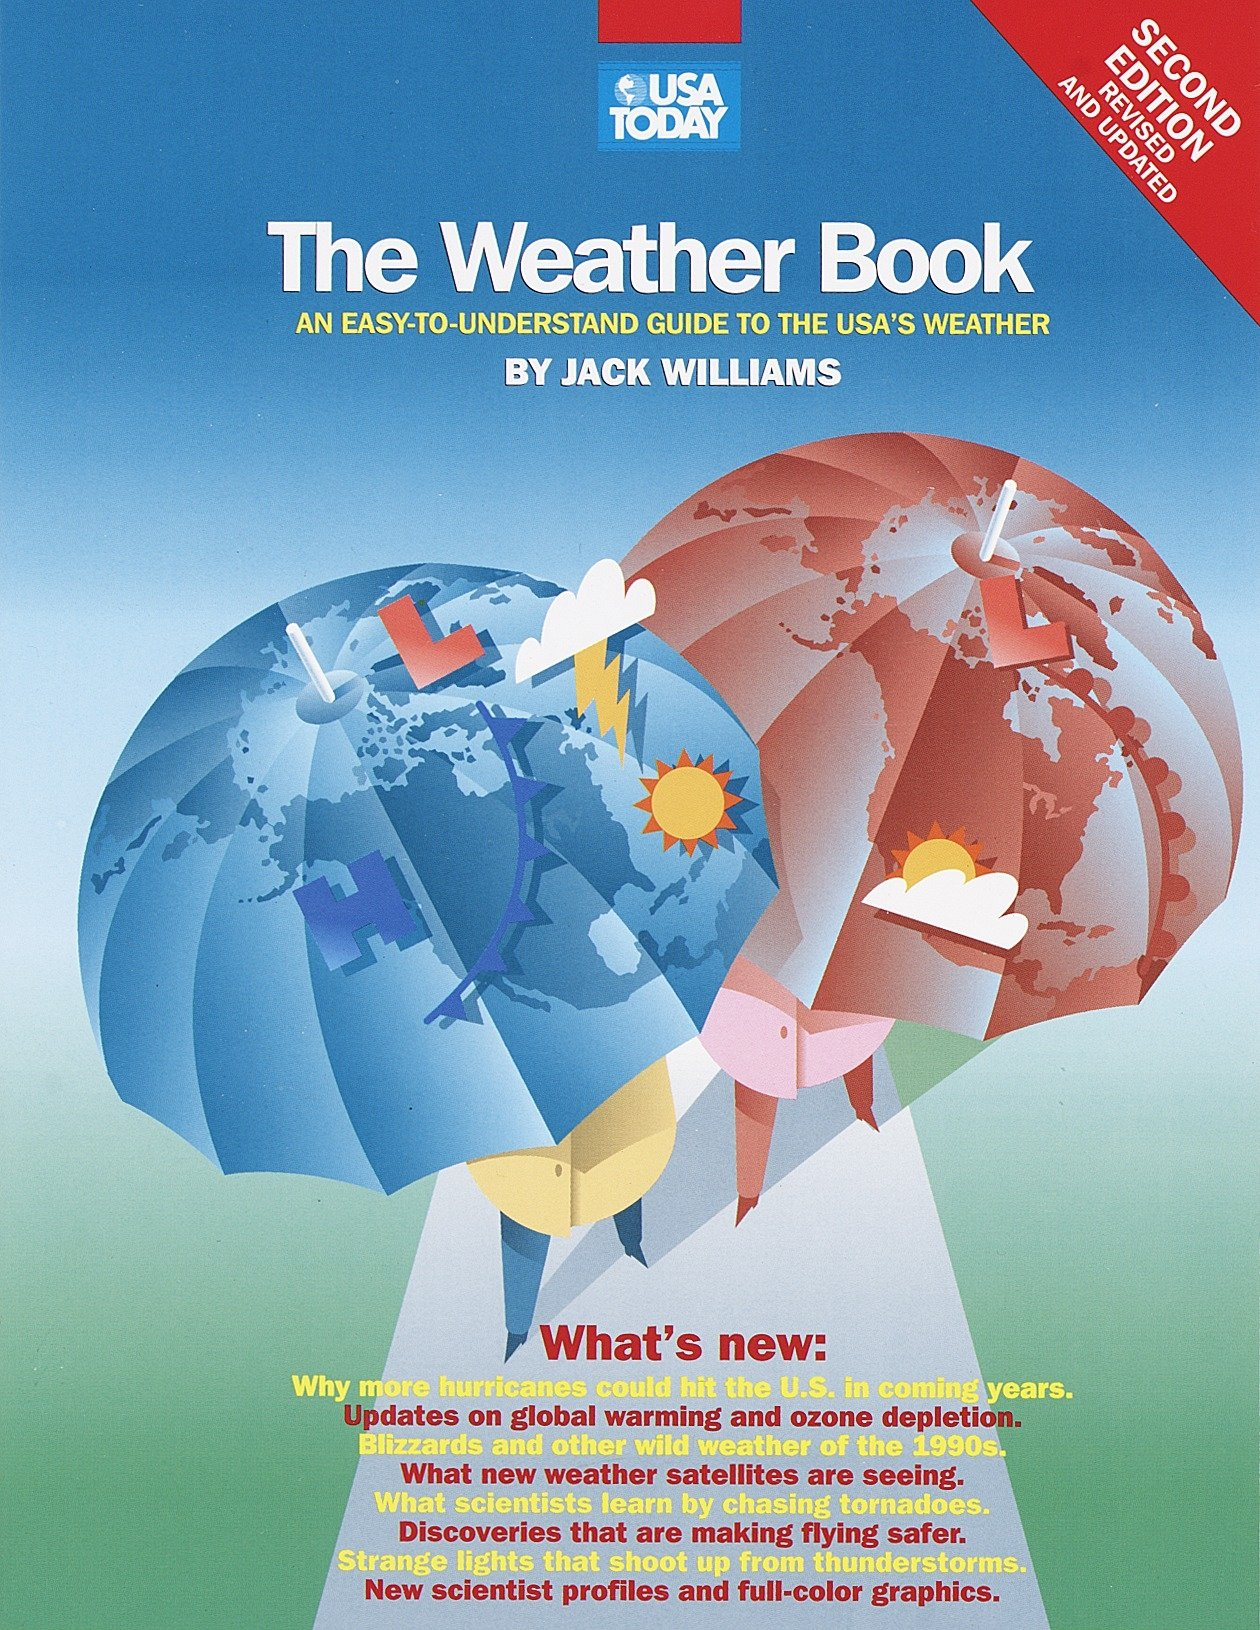 91VYXCJeYAL - The Weather Book: An Easy-to-Understand Guide to the USA's Weather